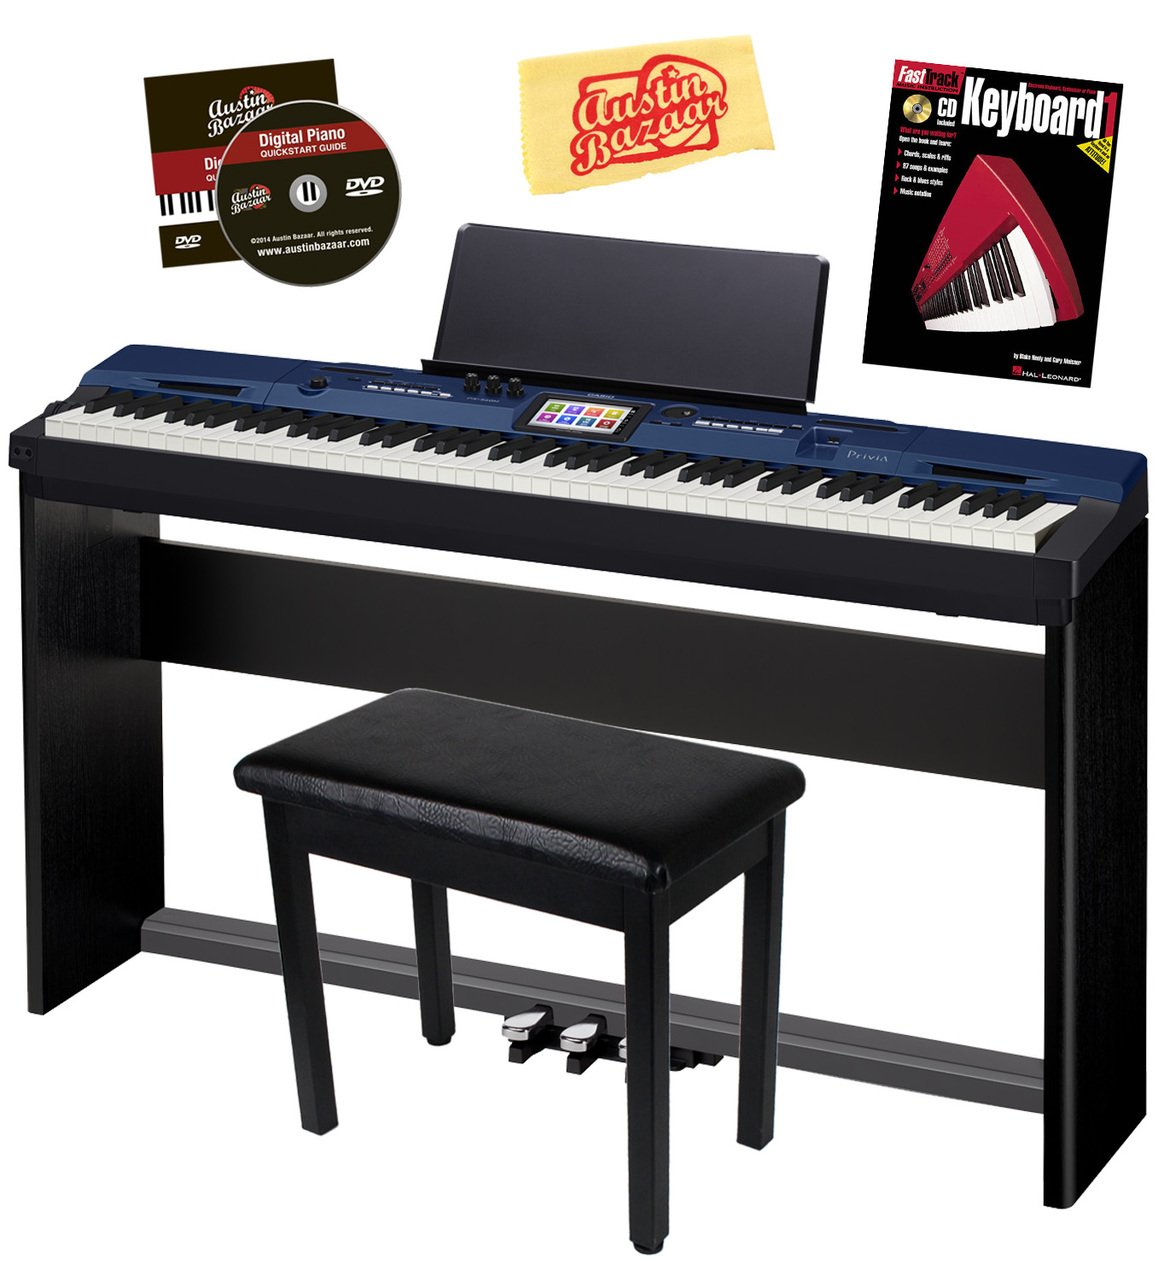 Casio Privia PX-560 Digital Piano - Blue Bundle with CS-67 Stand, SP-33 Pedal, Furniture Bench, Instructional Book, Instructional DVD, and Austin Bazaar Polishing Cloth PX560BE-COMBO-PAC-2